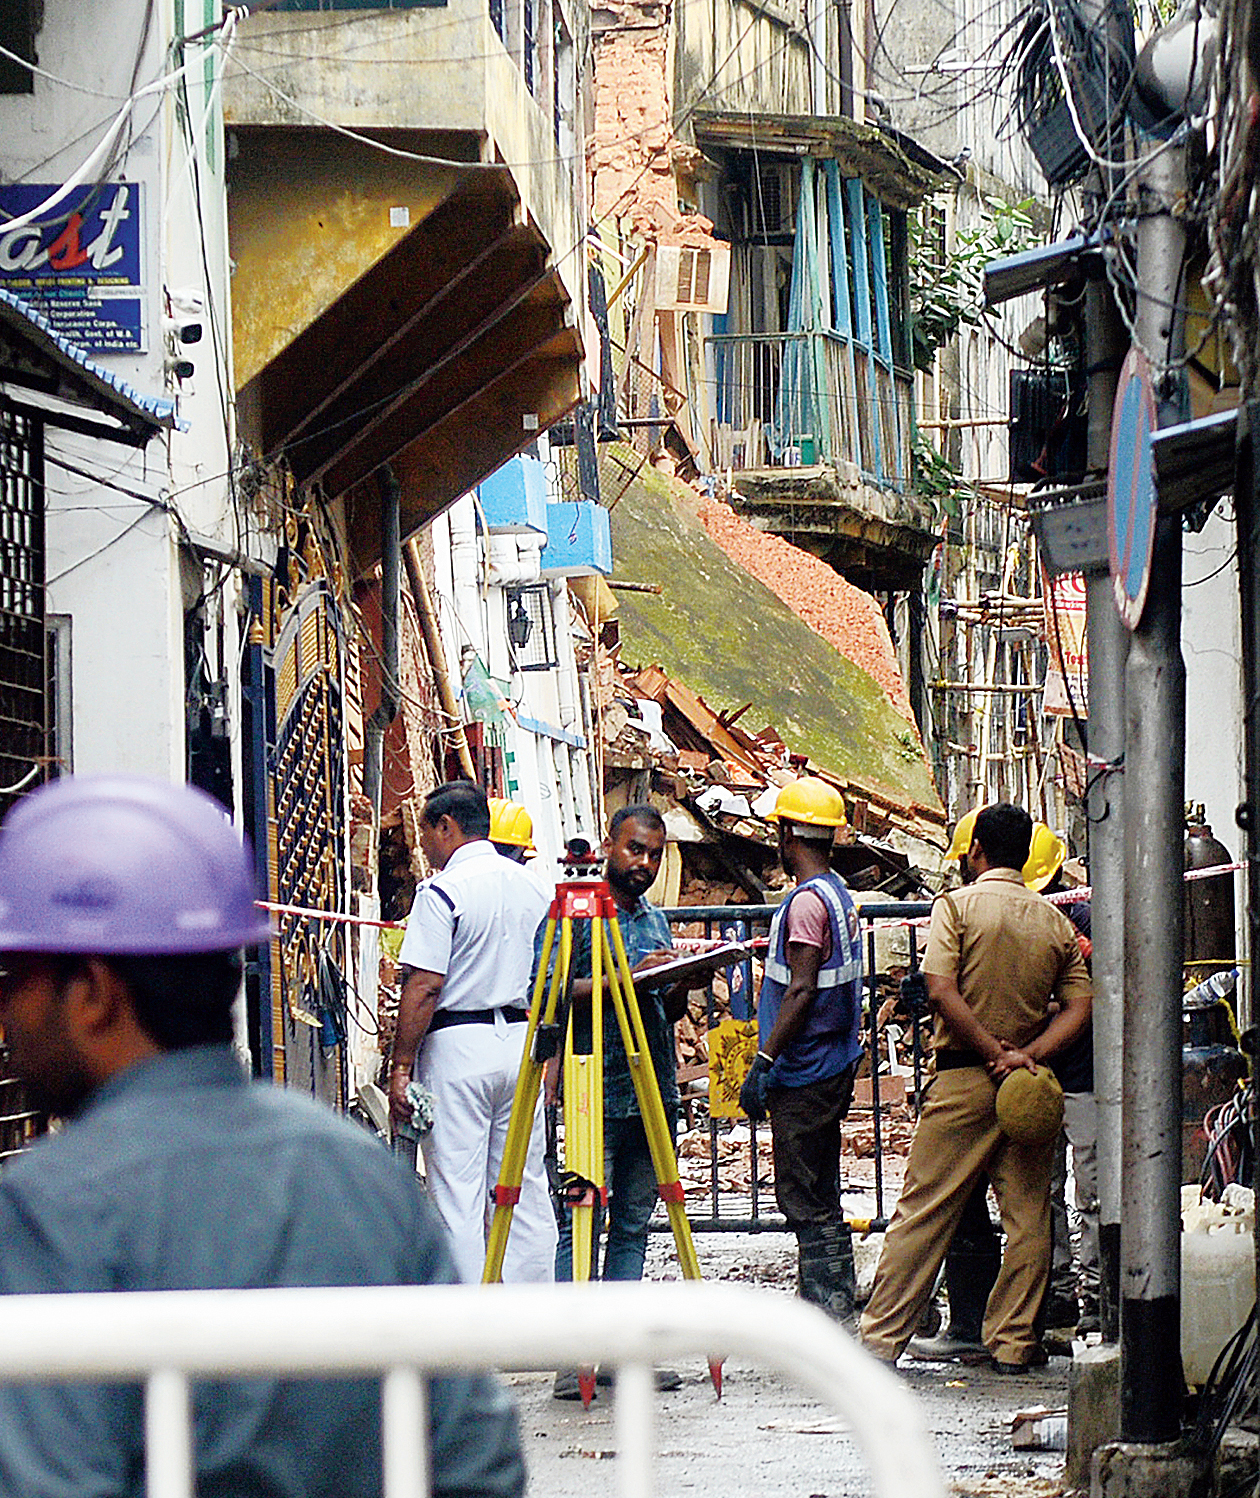 Syakrapara Lane in Bowbazar which was lined with jewellery traders' shops.